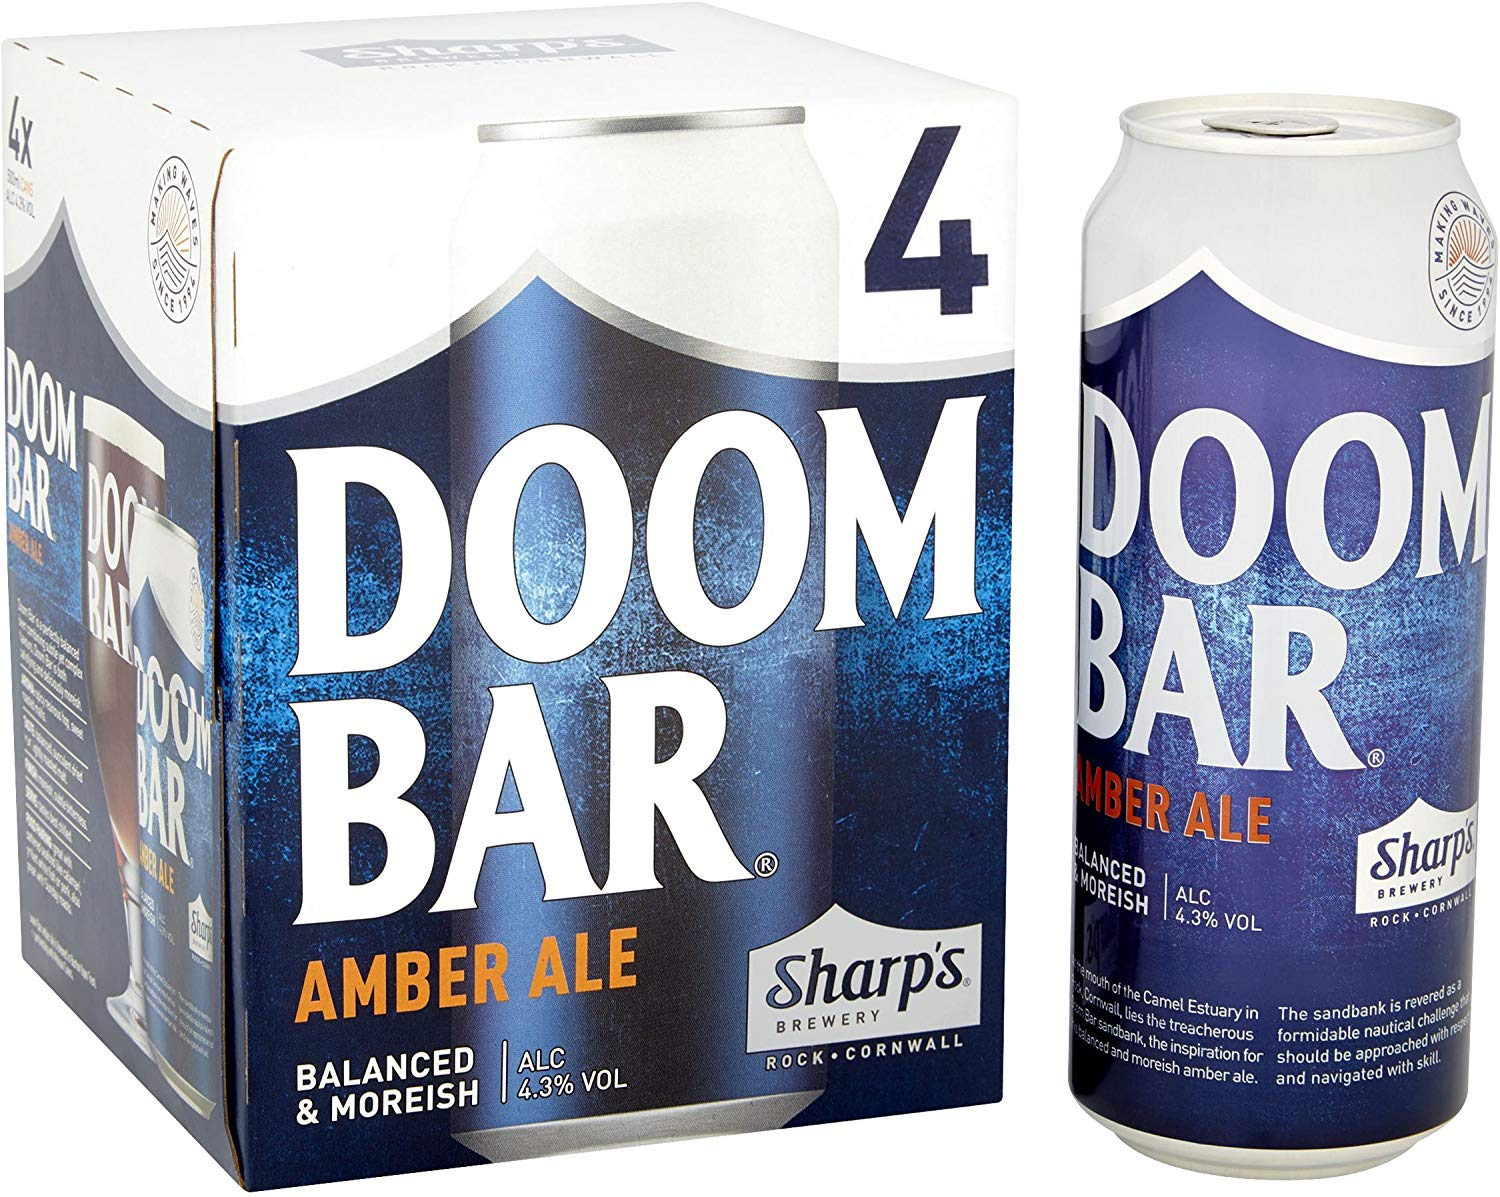 Sharps Doom Bar 24 X 500ml Cans £24